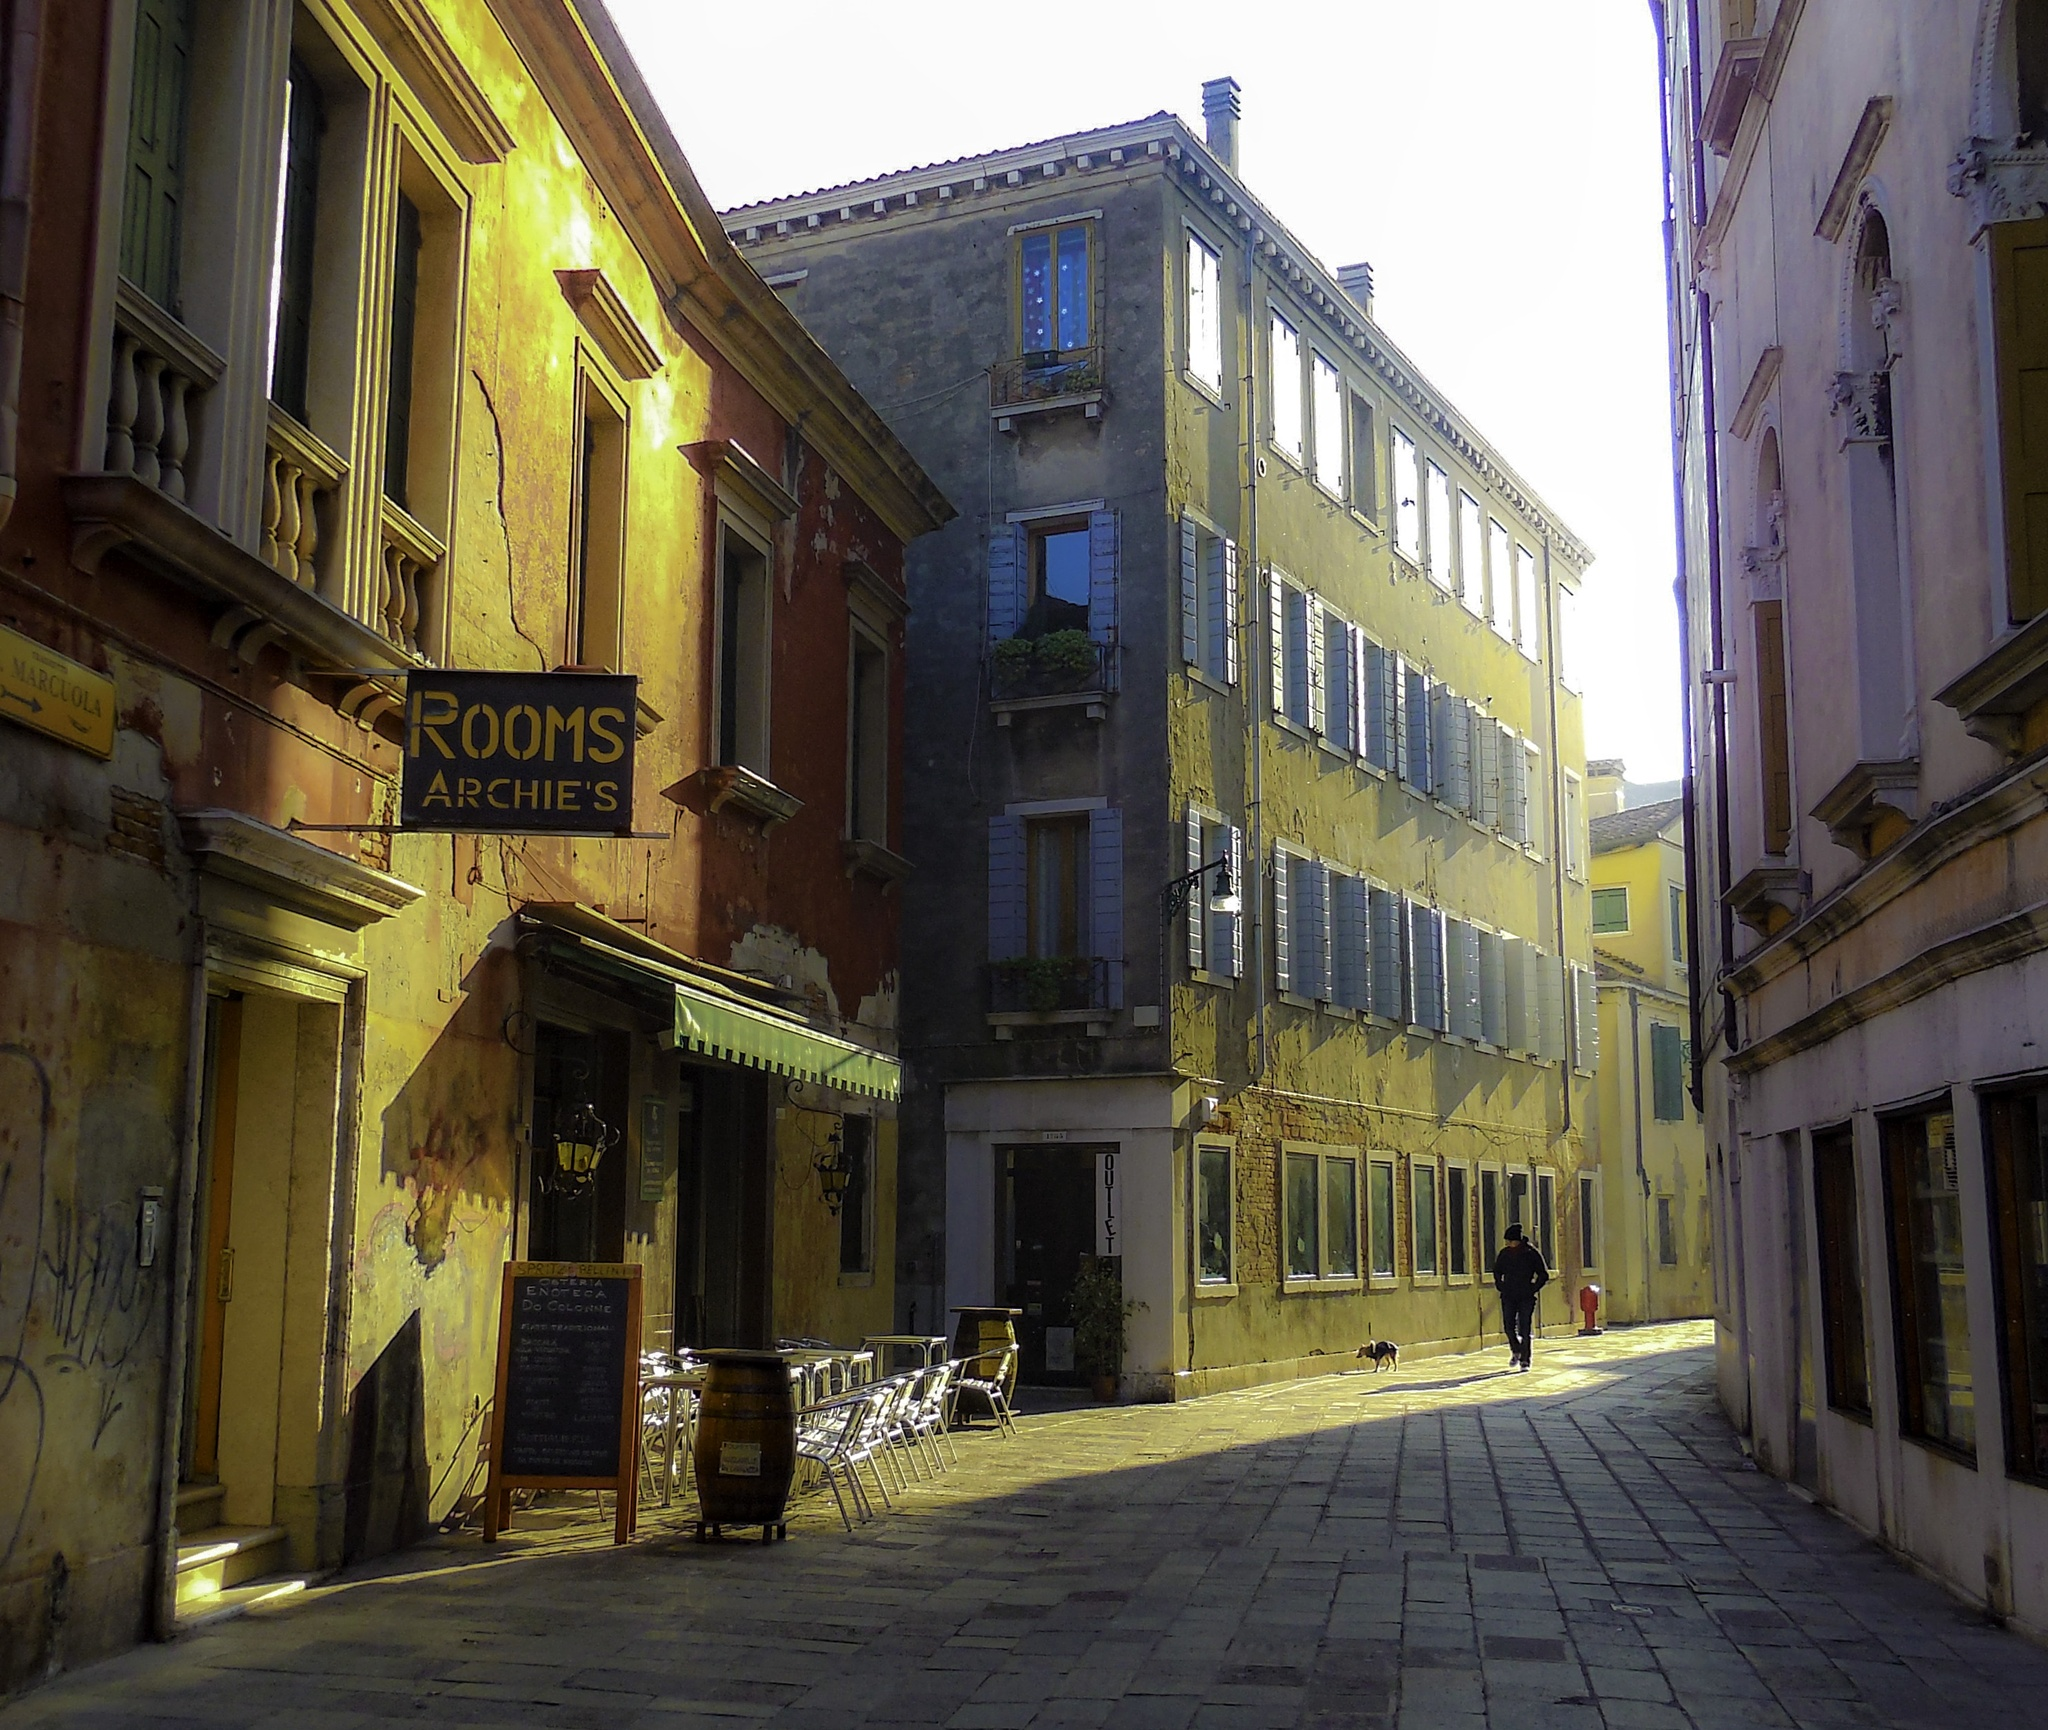 Strolling Venice - Man & His Dog by Lisa Iovino Nevolo Lewis